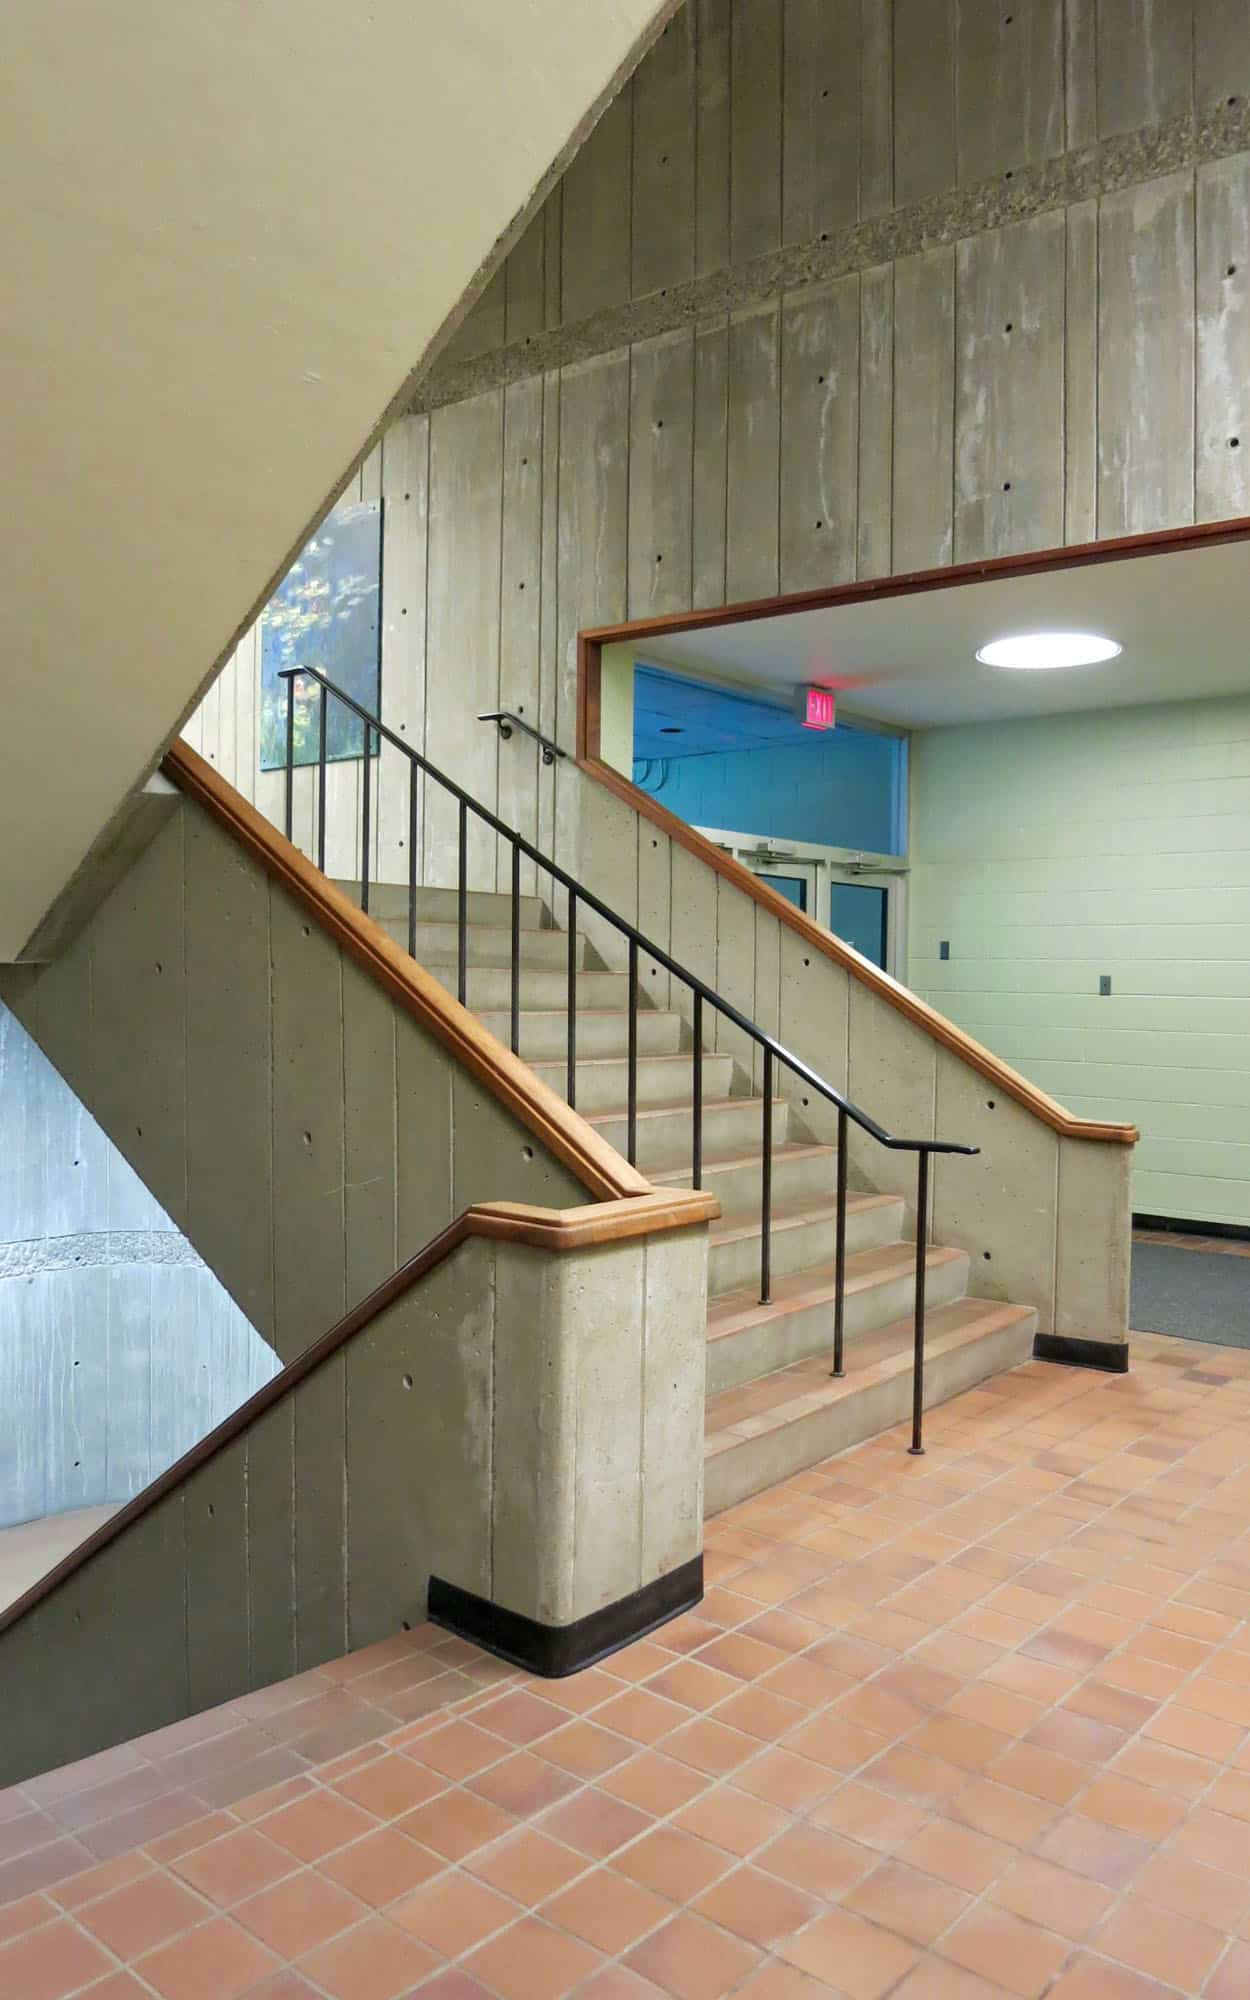 Stairs executed in board-formed concrete